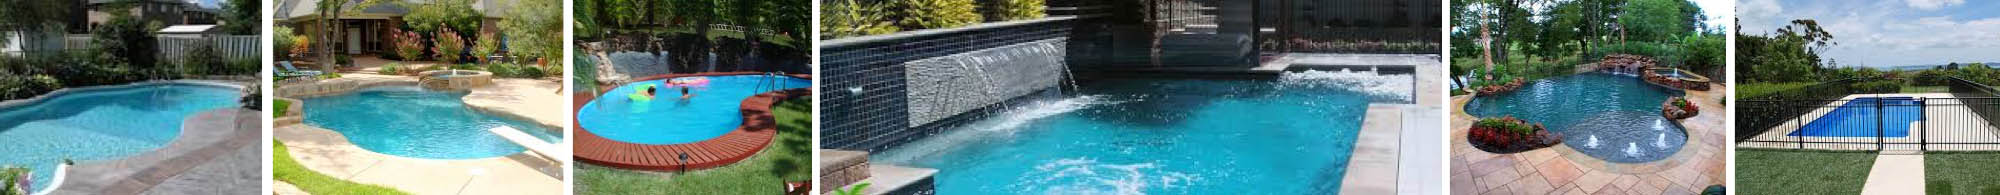 Pool Care & Maintenance Services